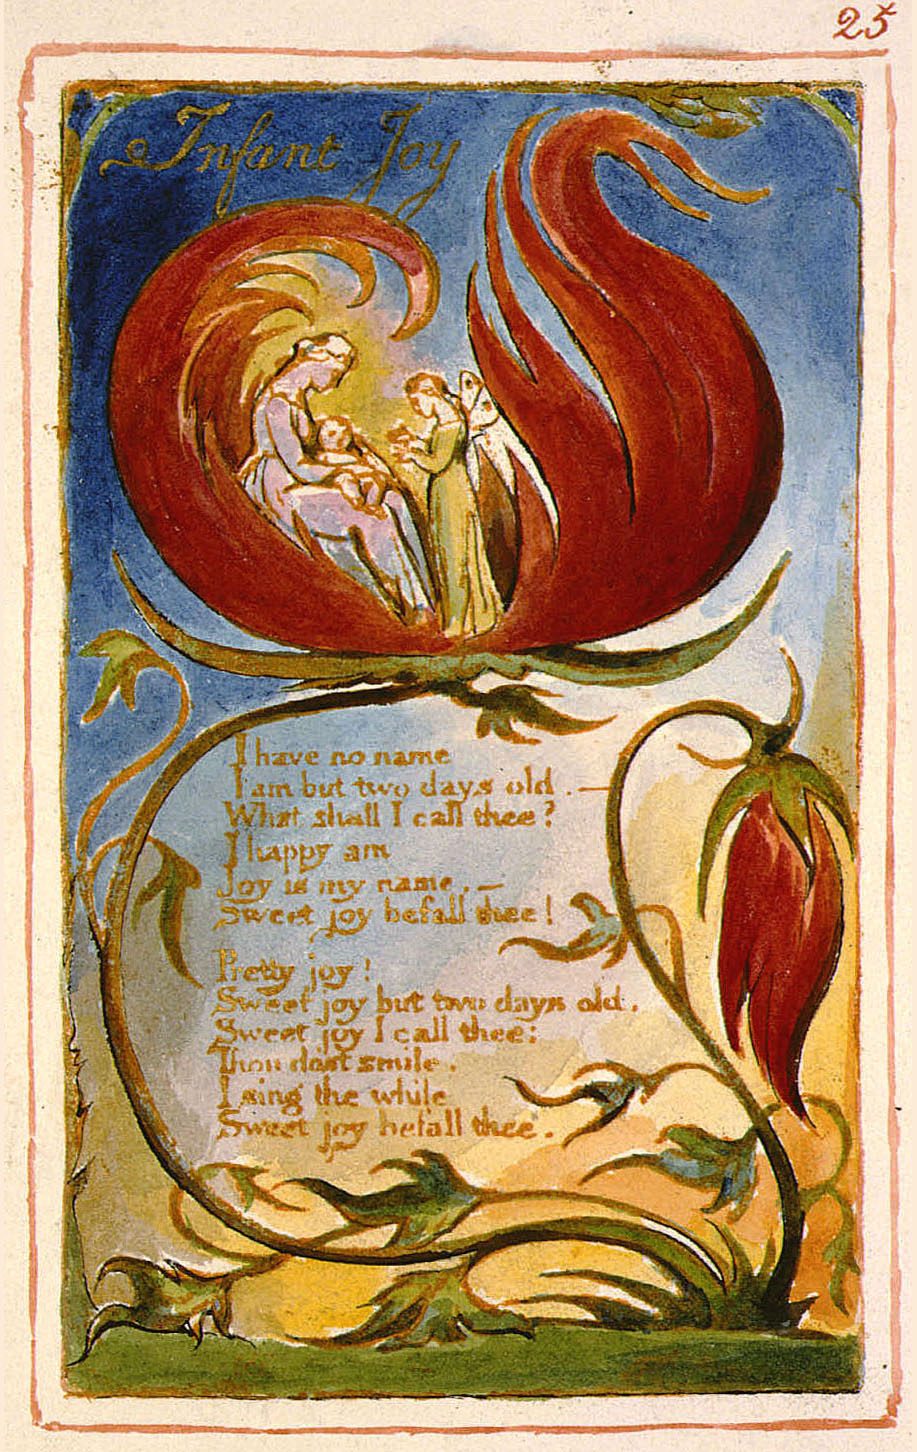 Introduction to the Songs of Innocence